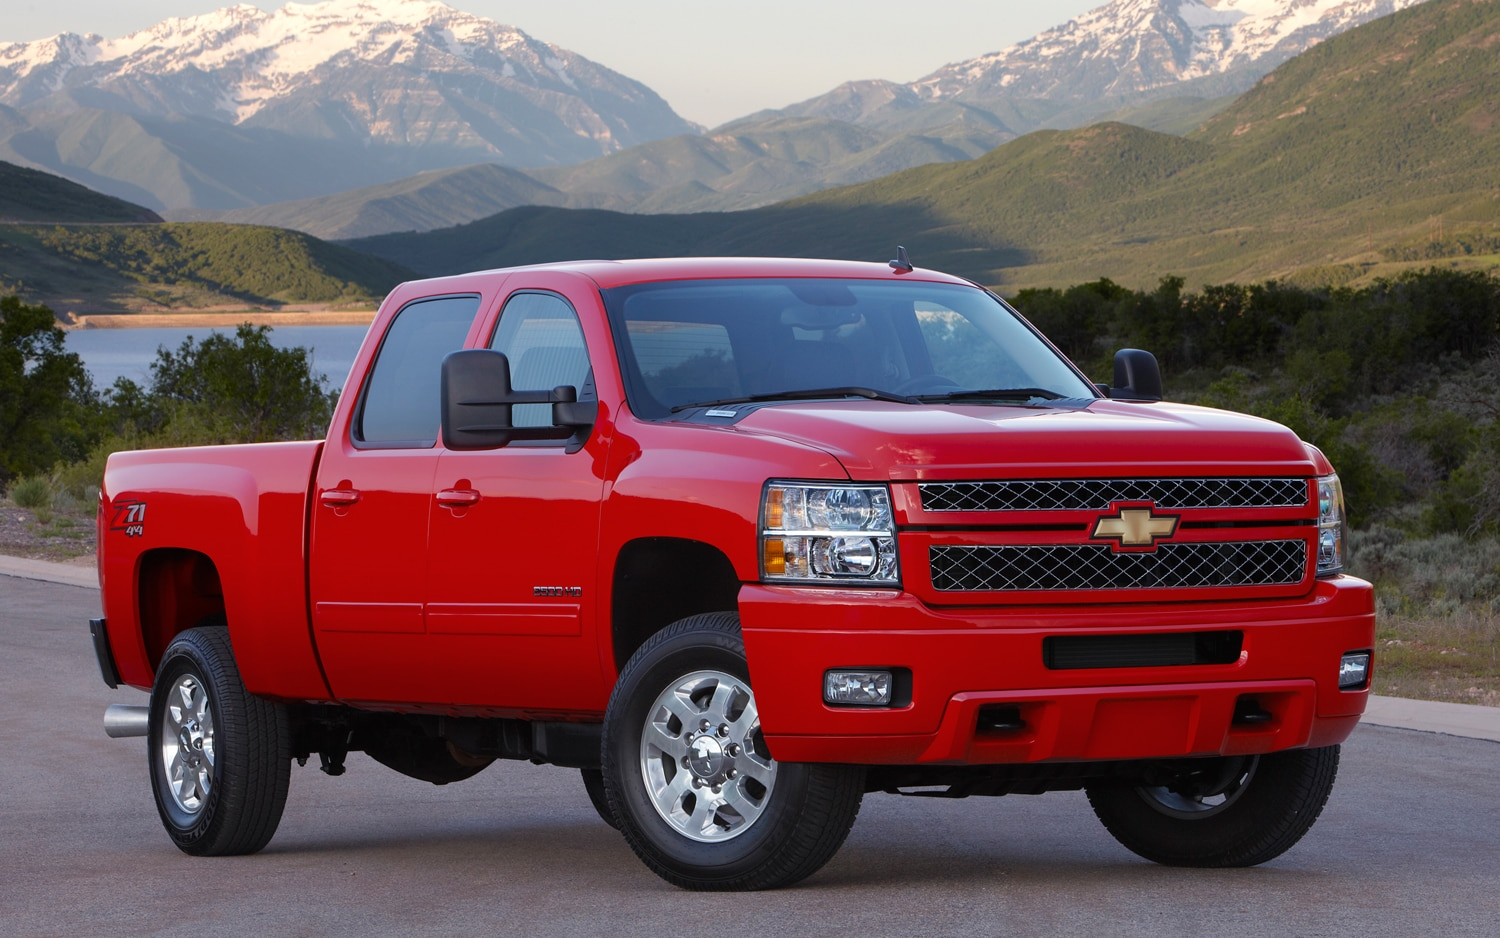 2013 Chevrolet Silverado 2500 HD Front View